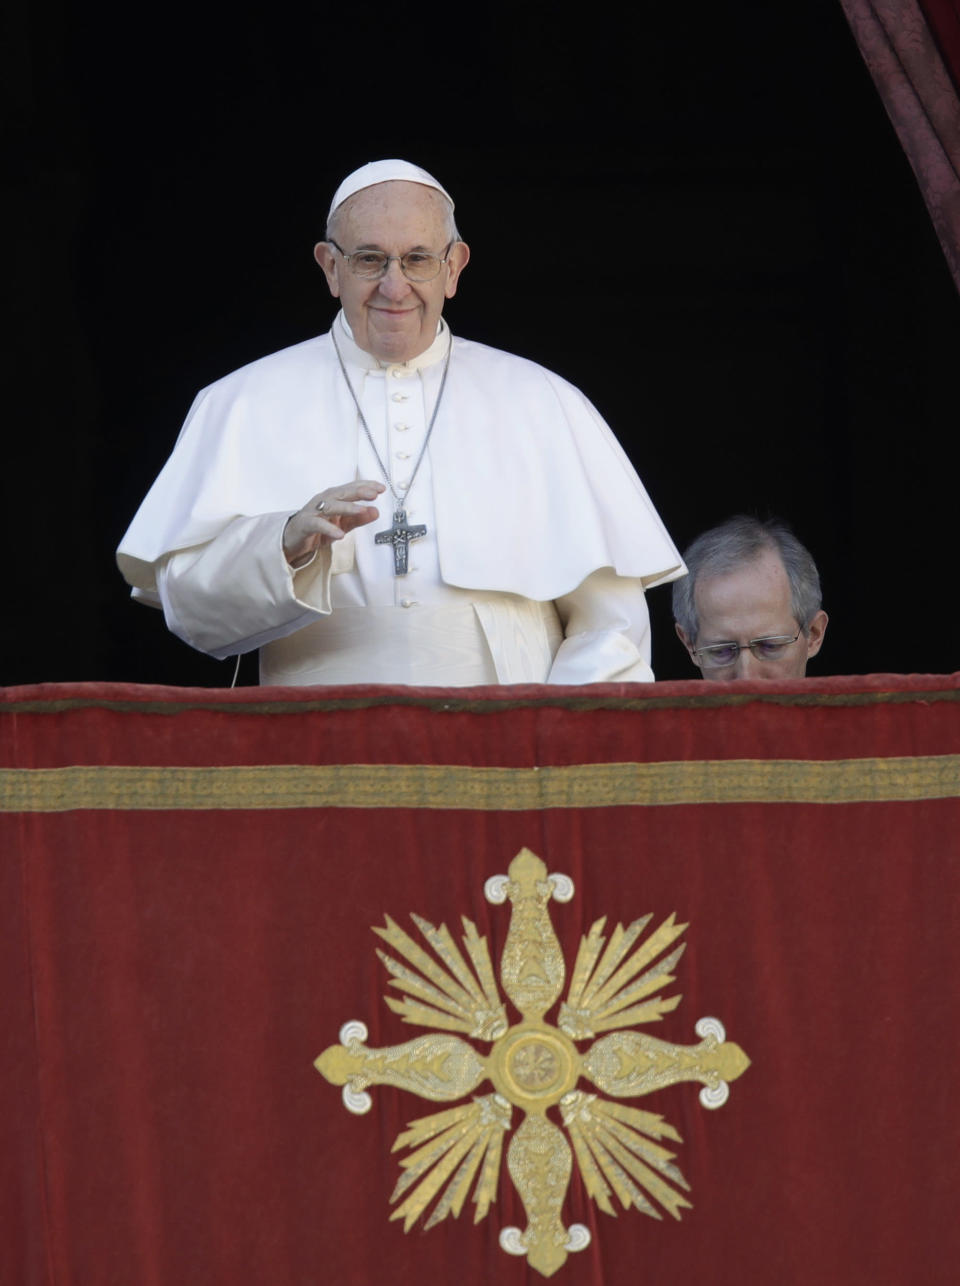 Pope Francis, flanked at right by Master of Ceremonies Bishop Guido Marini, arrives to deliver the Urbi et Orbi (Latin for 'to the city and to the world' ) Christmas' day blessing from the main balcony of St. Peter's Basilica at the Vatican, Tuesday, Dec. 25, 2018. (AP Photo/Alessandra Tarantino)